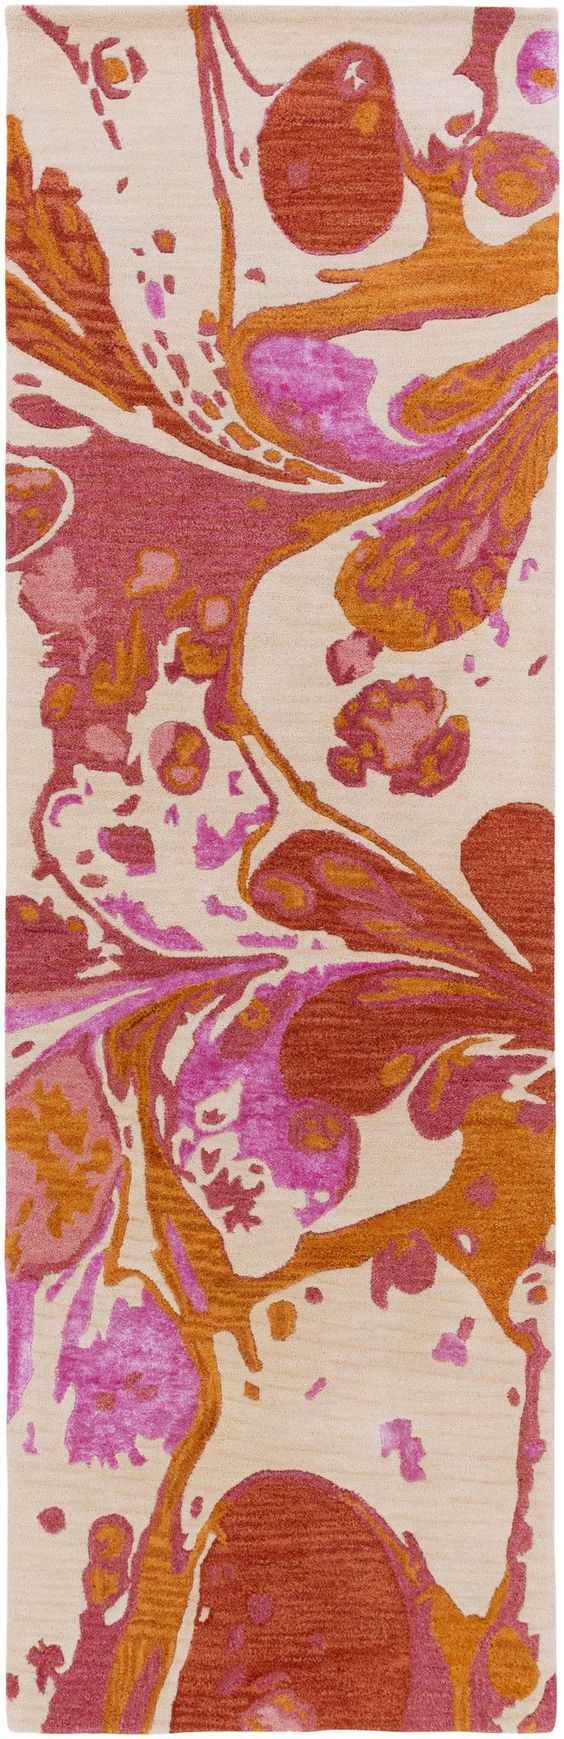 Surya BAN3359 Banshee Orange, Pink Runner Area Rug